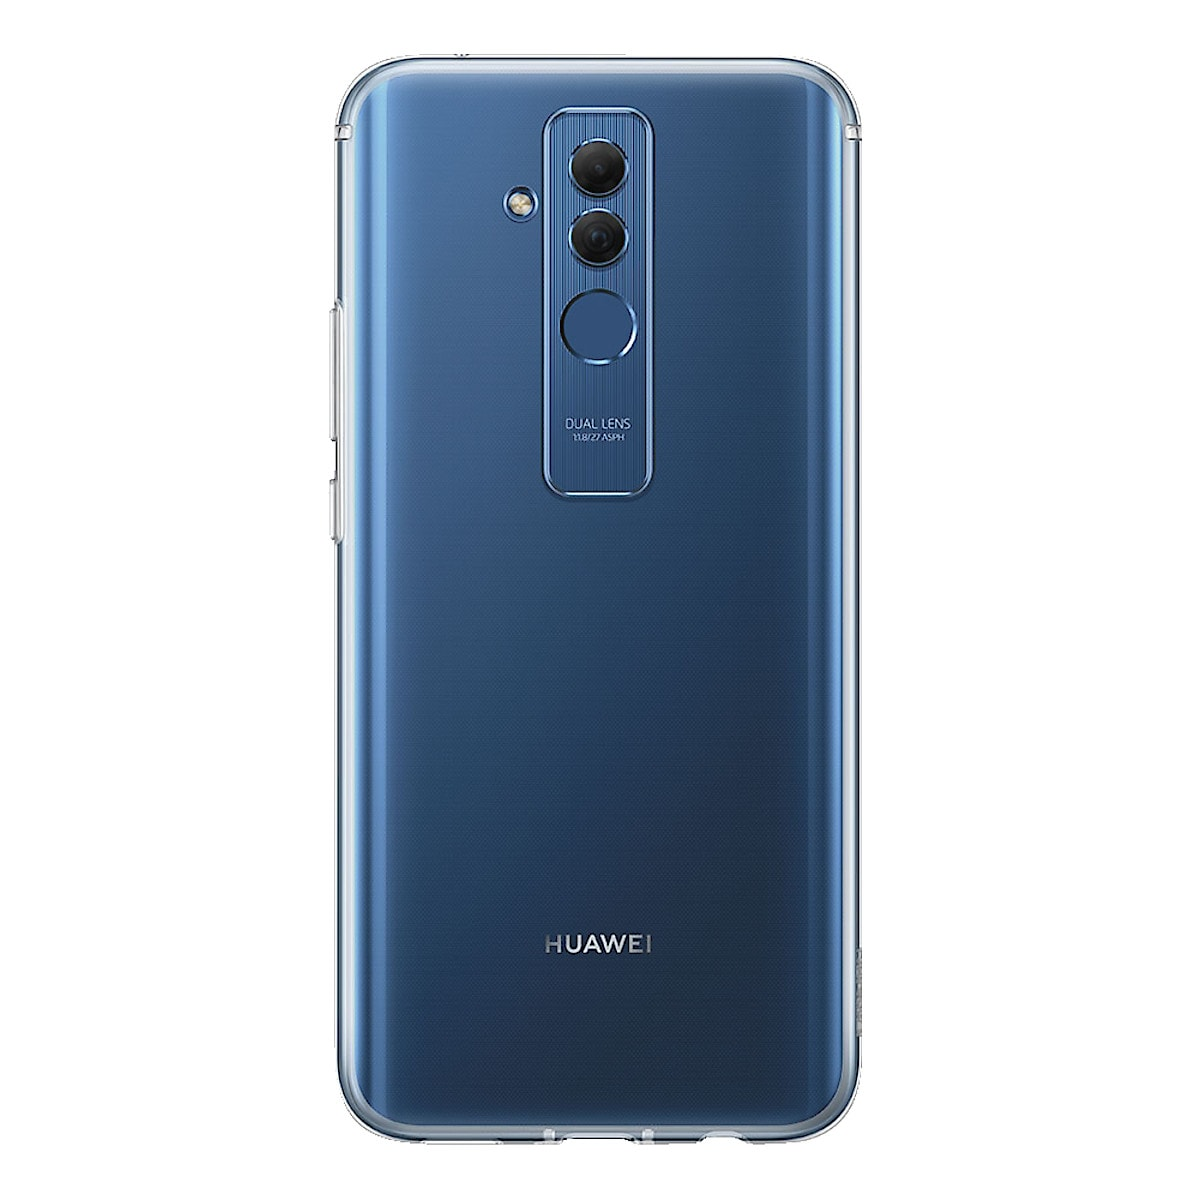 Mobildeksel for Huawei Mate 20 Lite